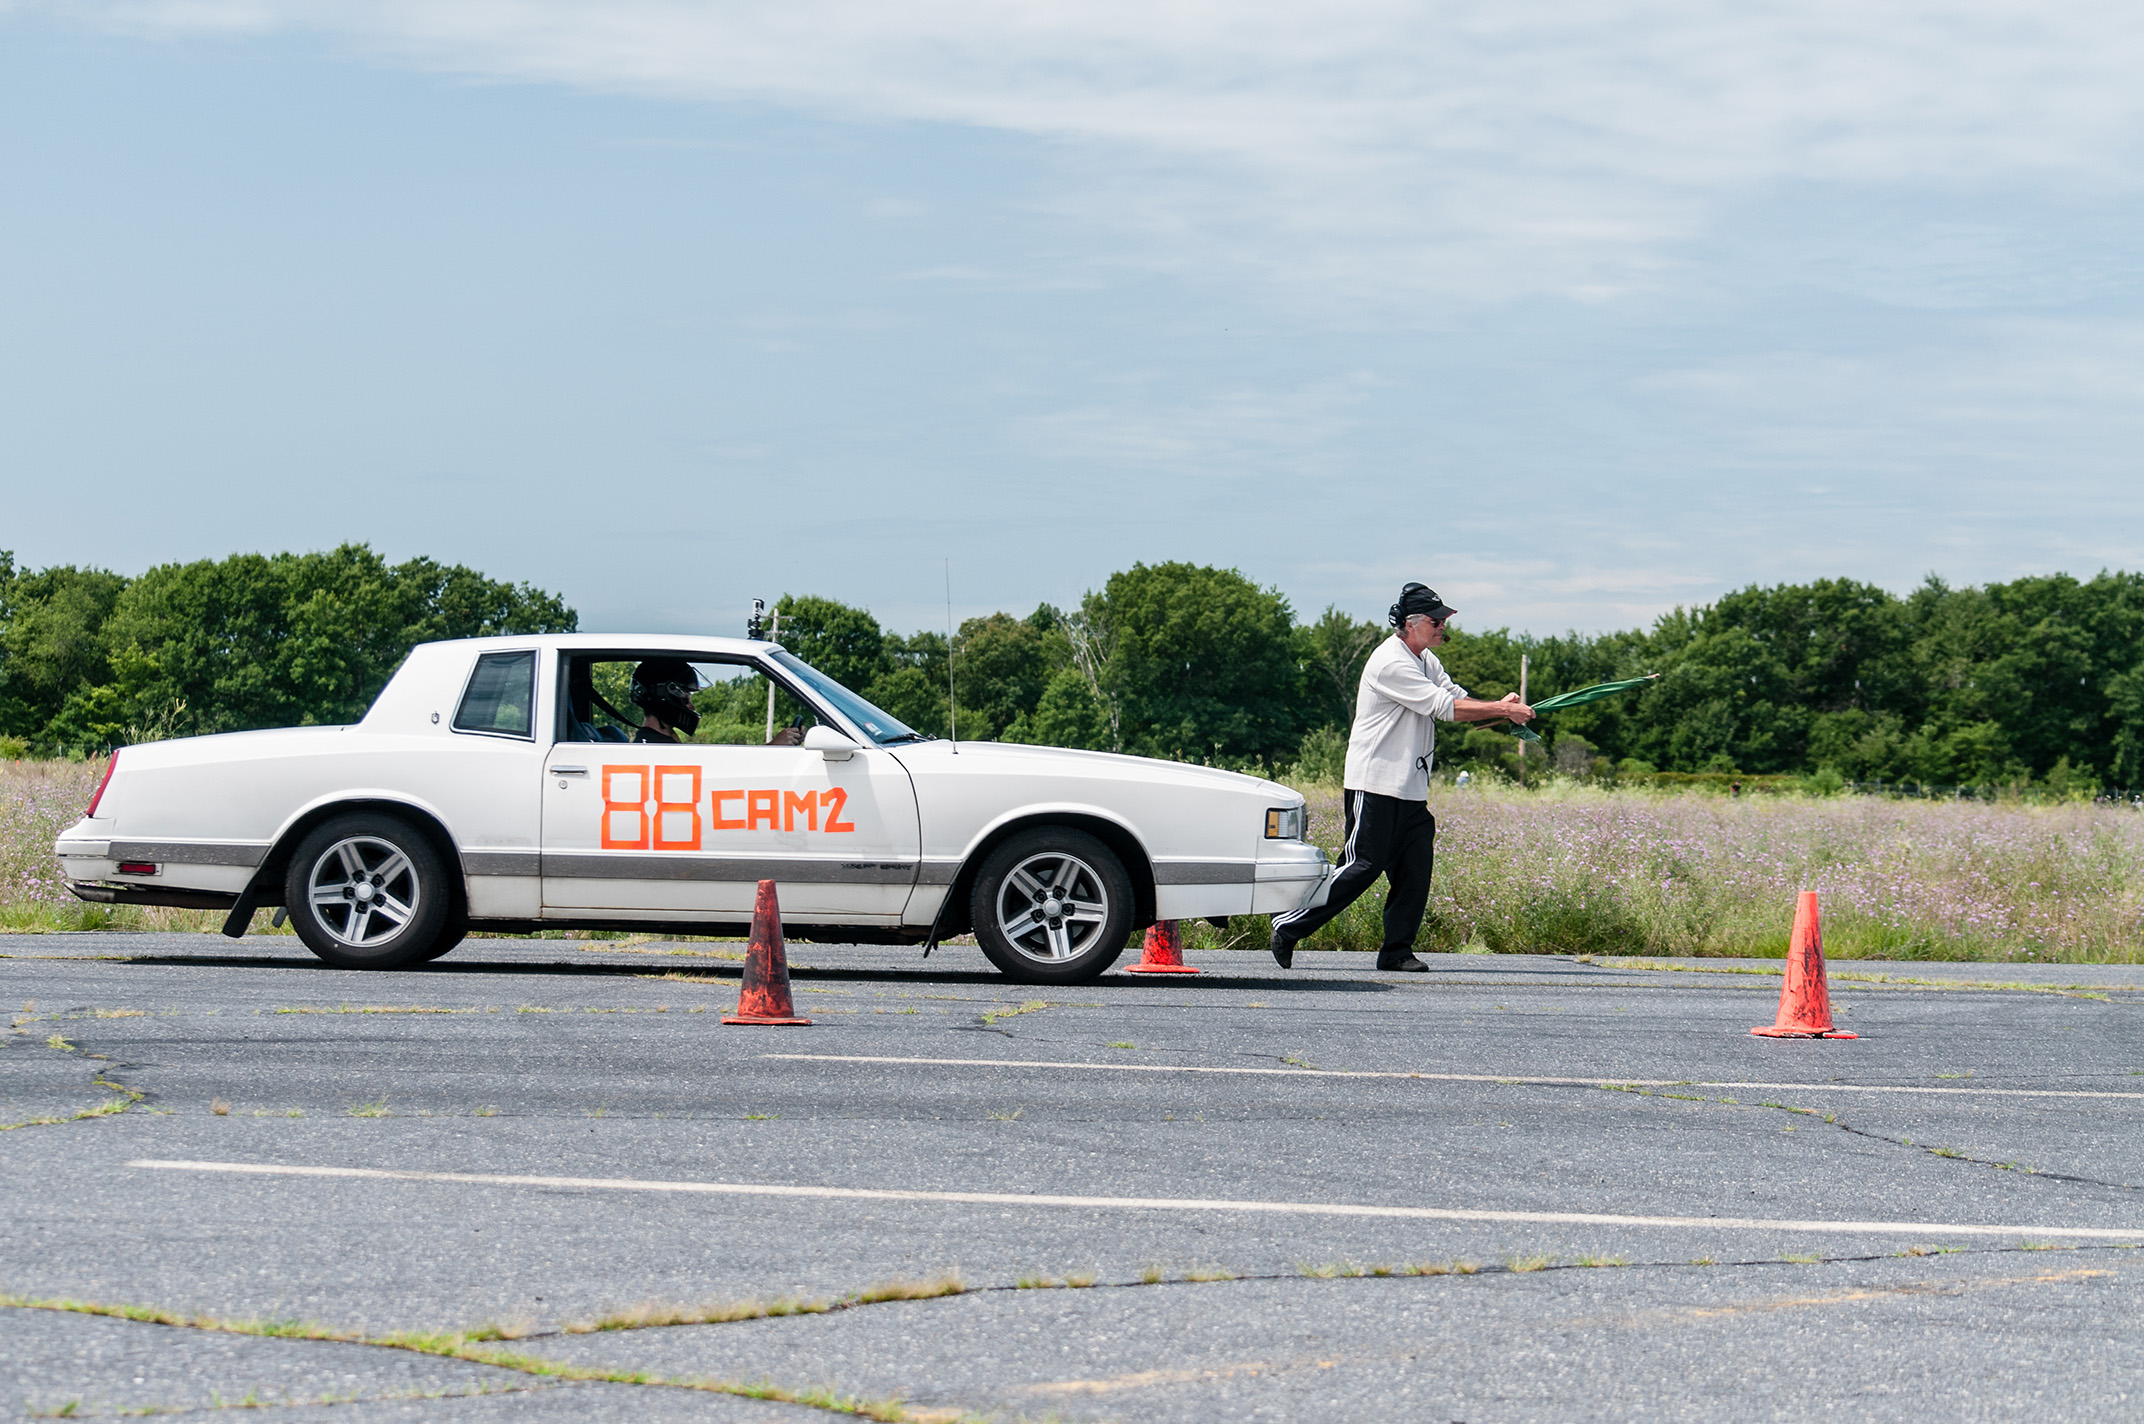 Nut Driver: First Autocross After Driving School, But Was I Paying Attention In Class?